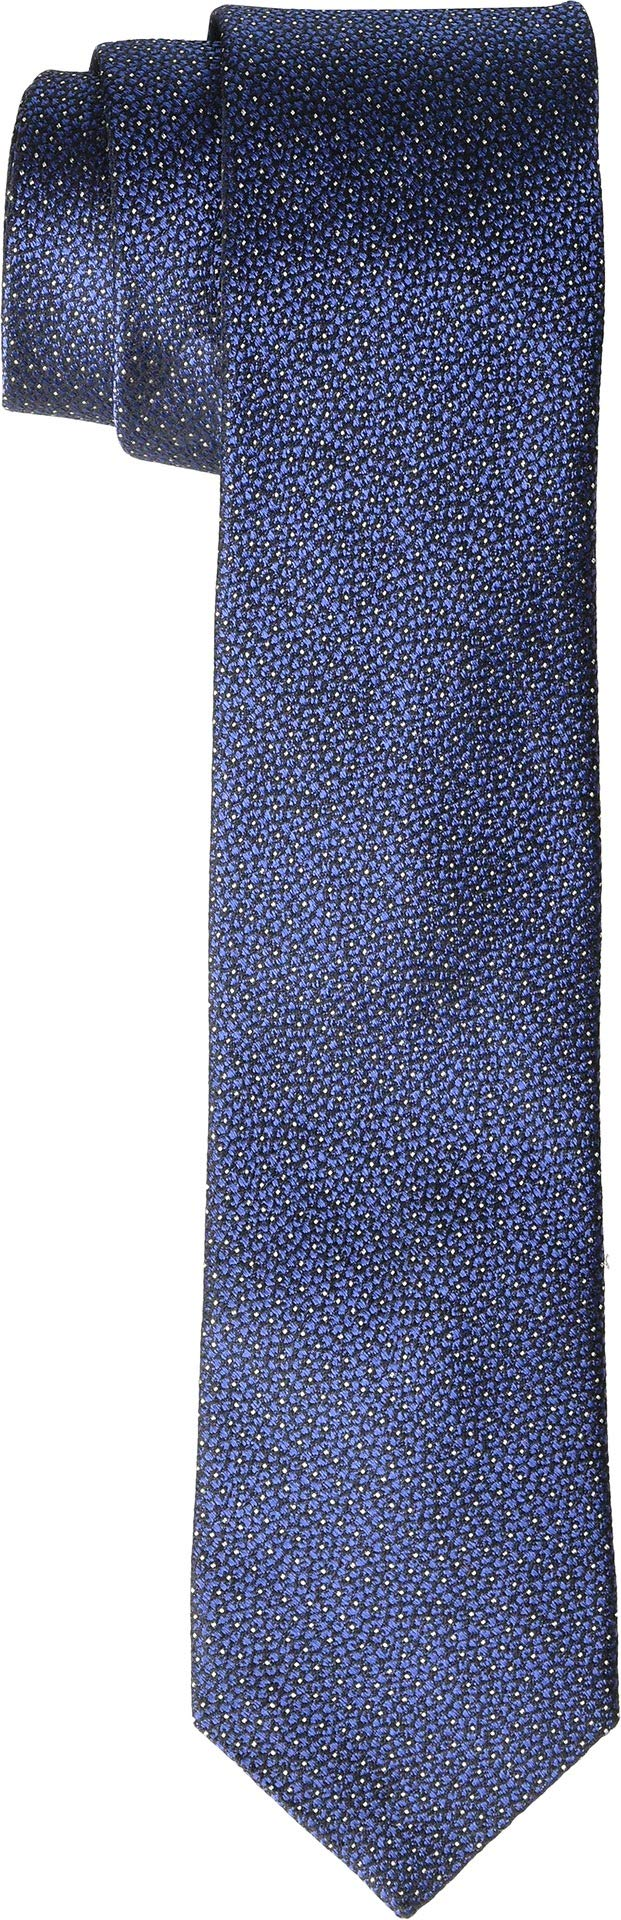 Ted Baker Men's Pindot Flower Navy One Size